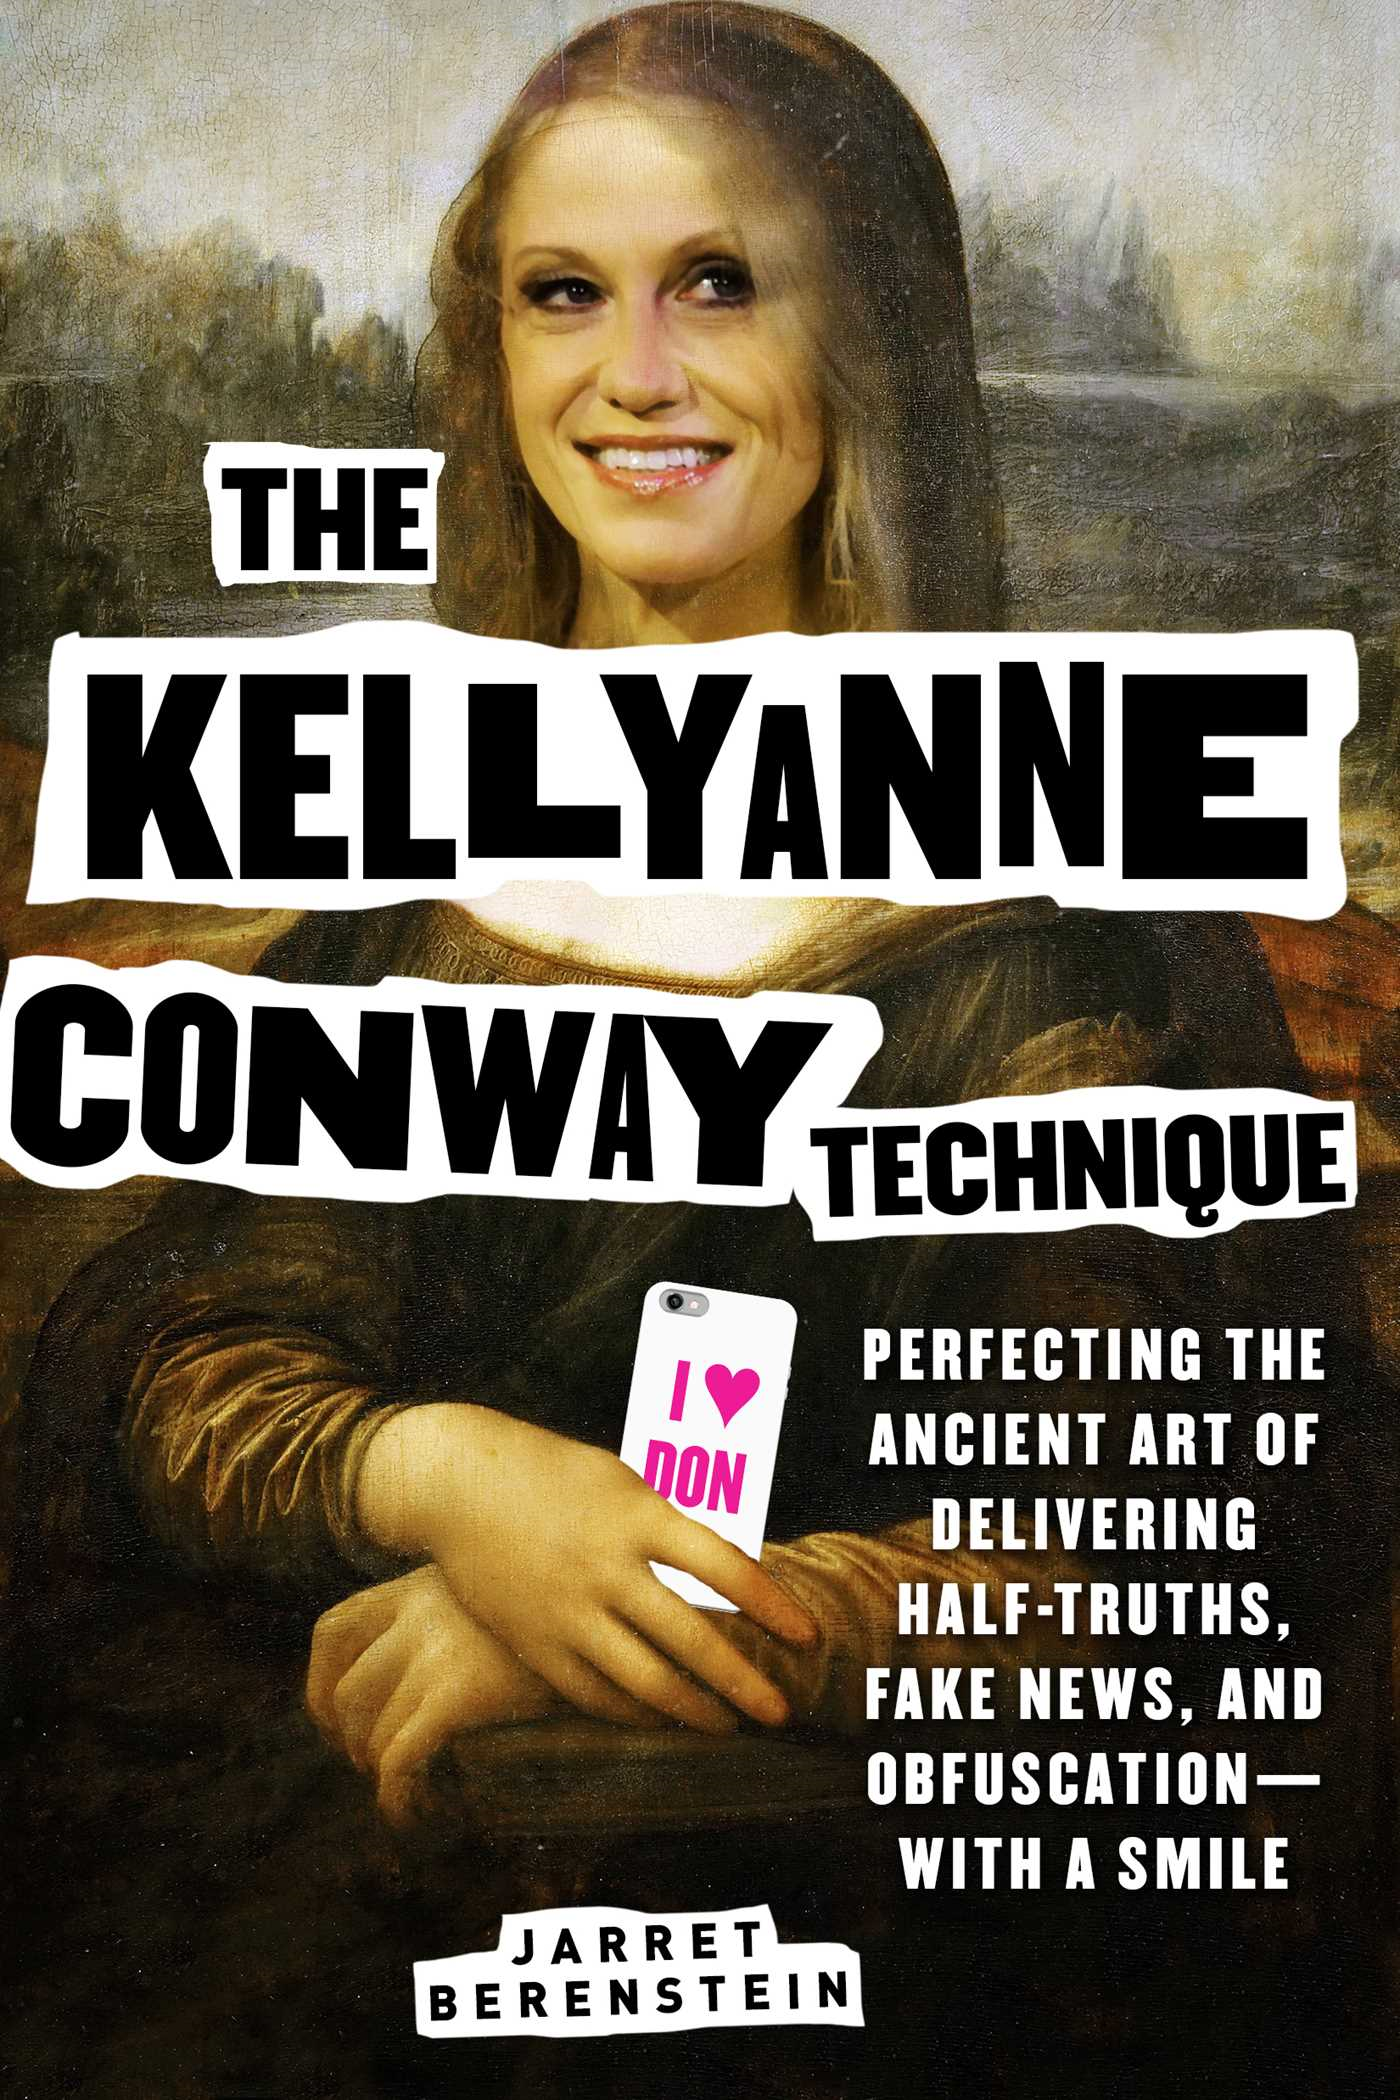 The Kellyanne Conway Technique